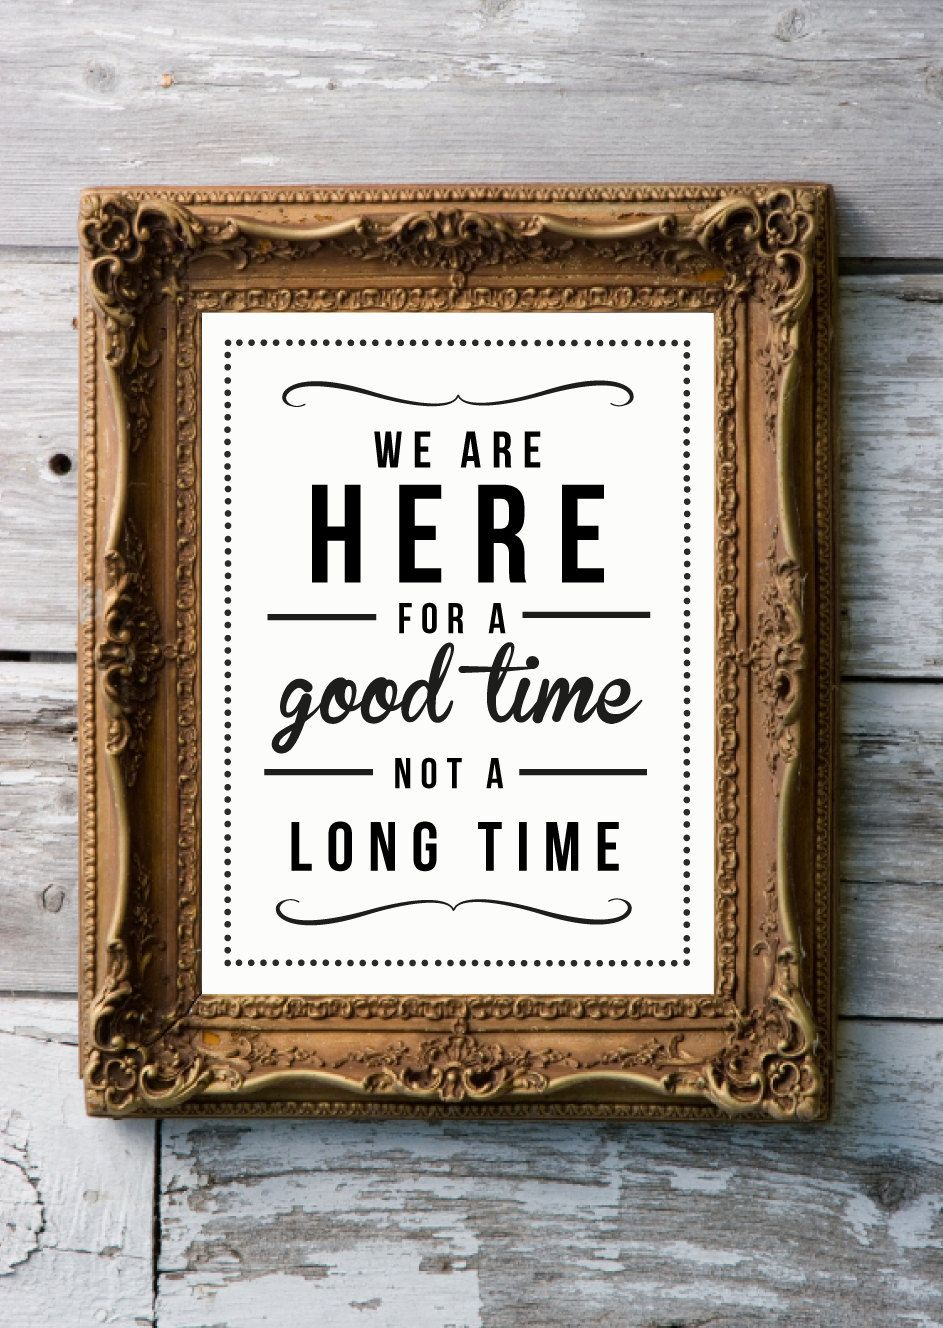 We Are Here For A Good Time Not A Long Time Quotes Pinterest